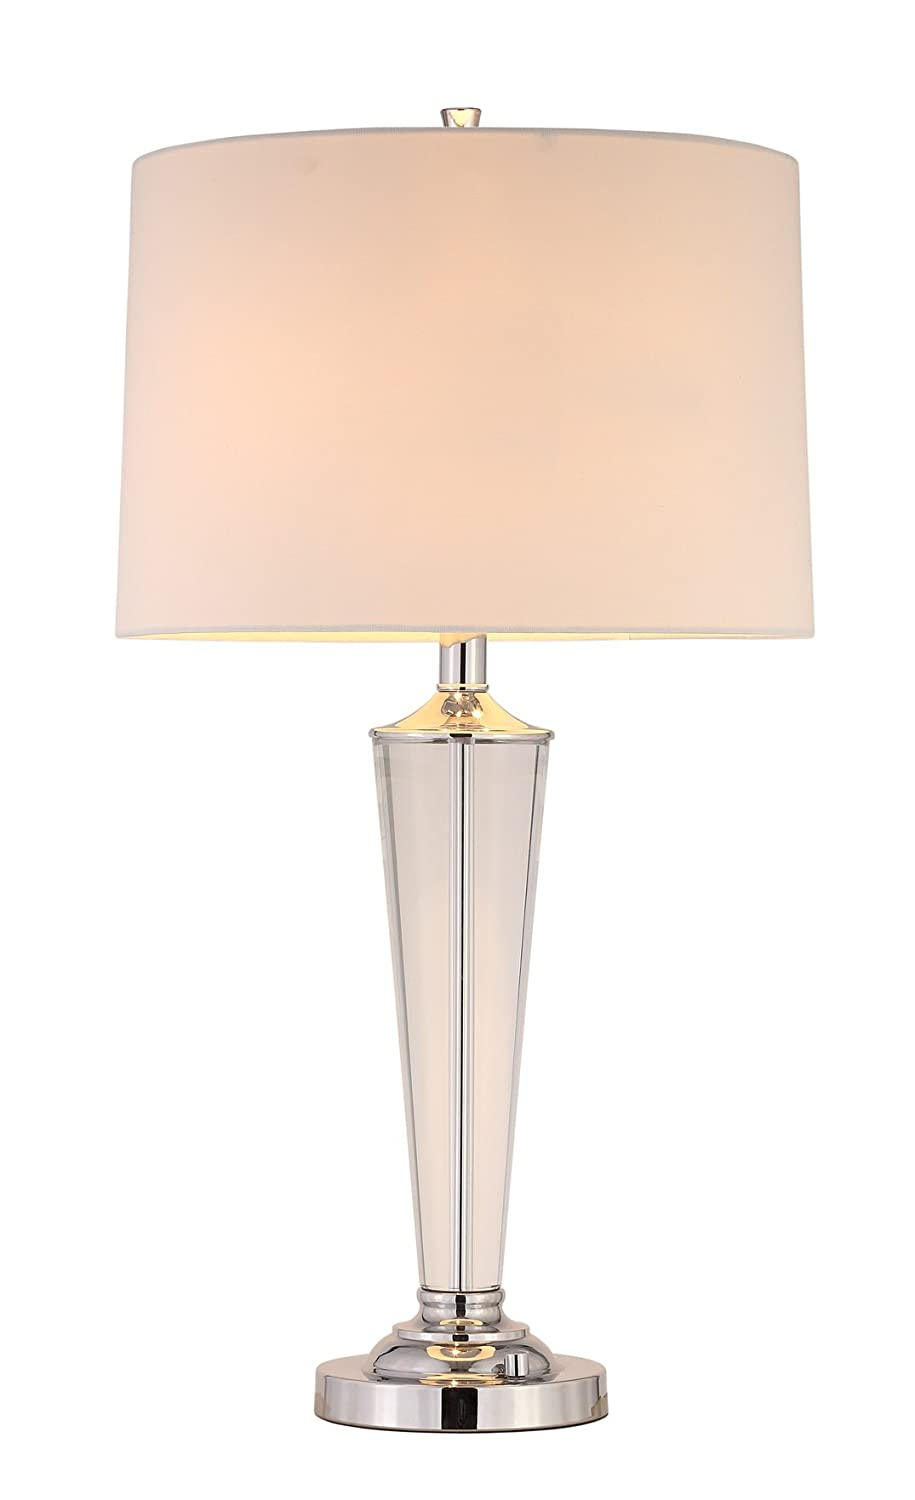 Artiva USA LED7446TRC Suite Collection 70 H Modern Chrome 3-Light LED Crystal Torchiere Floor Lamp with Dimmer